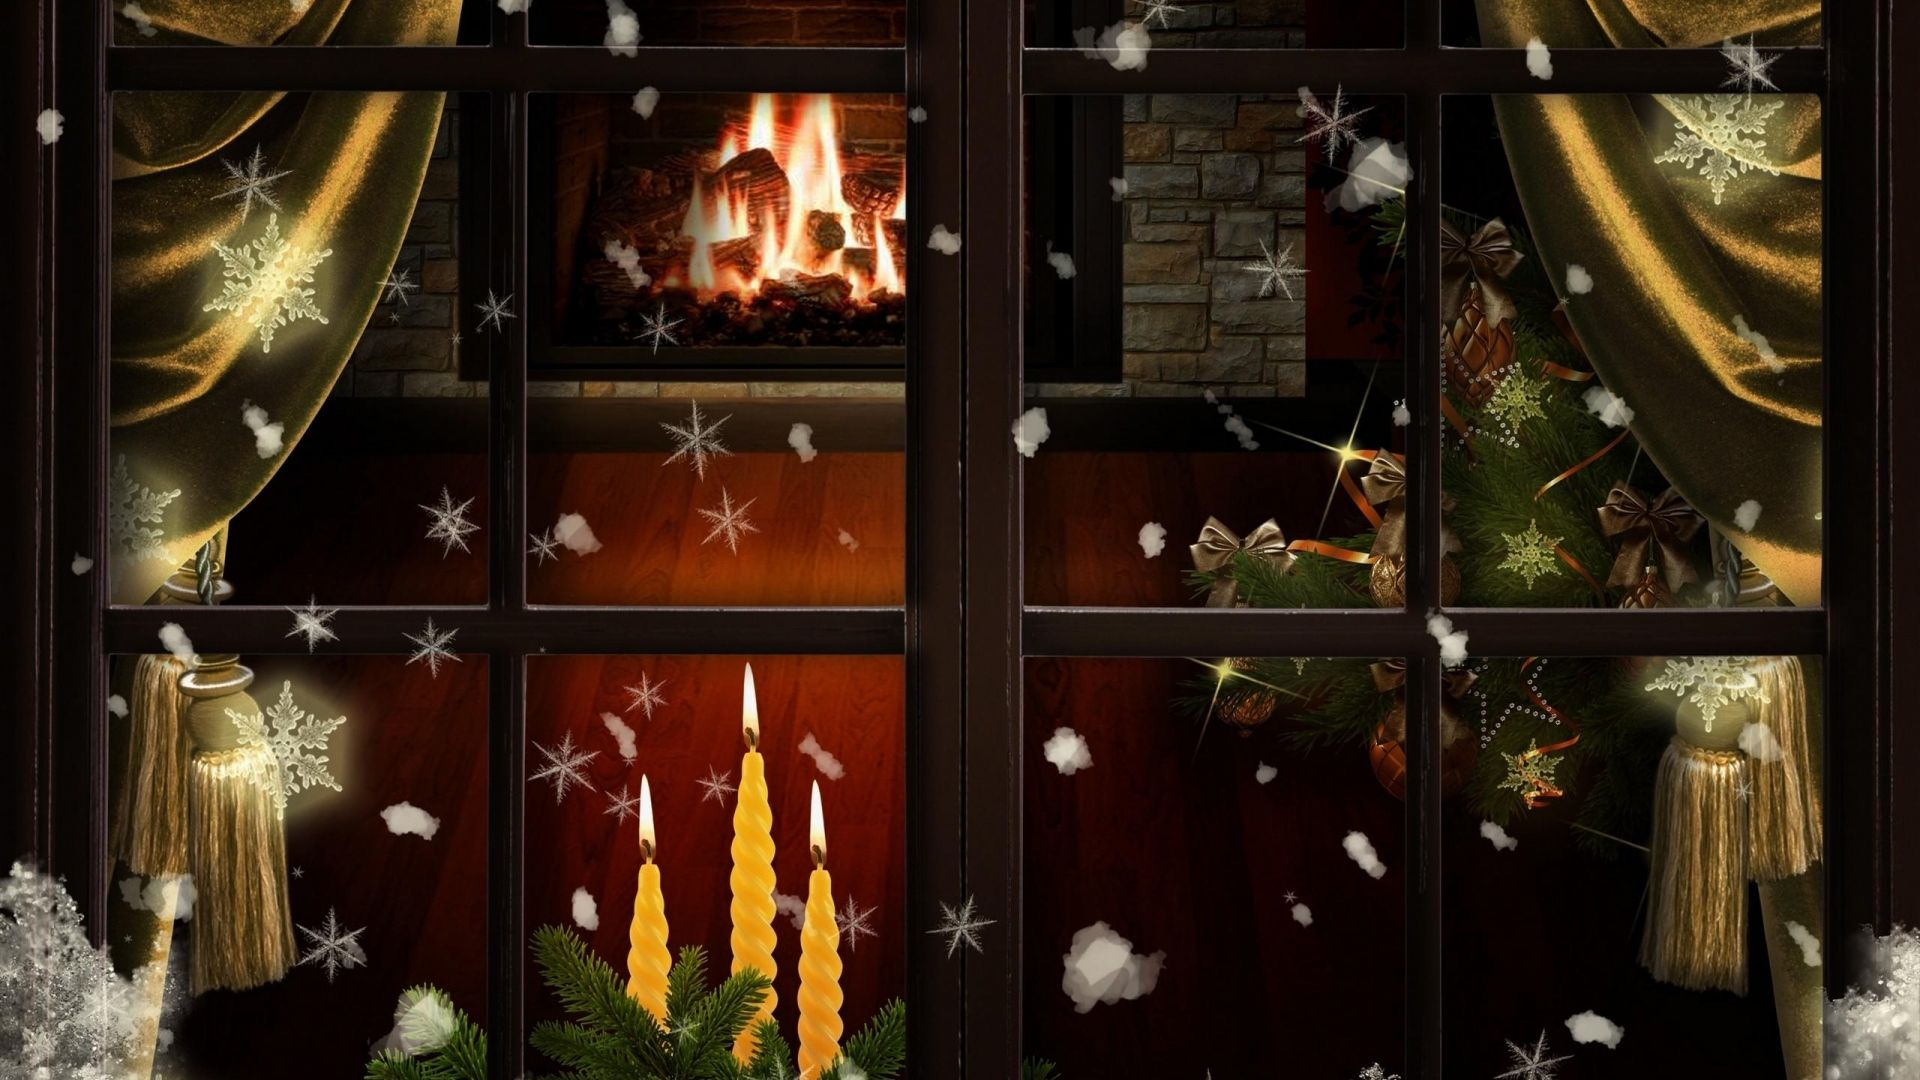 1920x1080 Wallpaper Window Fireplace Candles Christmas Tree Cozy Christmas Christmas Window Candles In Fireplace Holiday Wallpaper